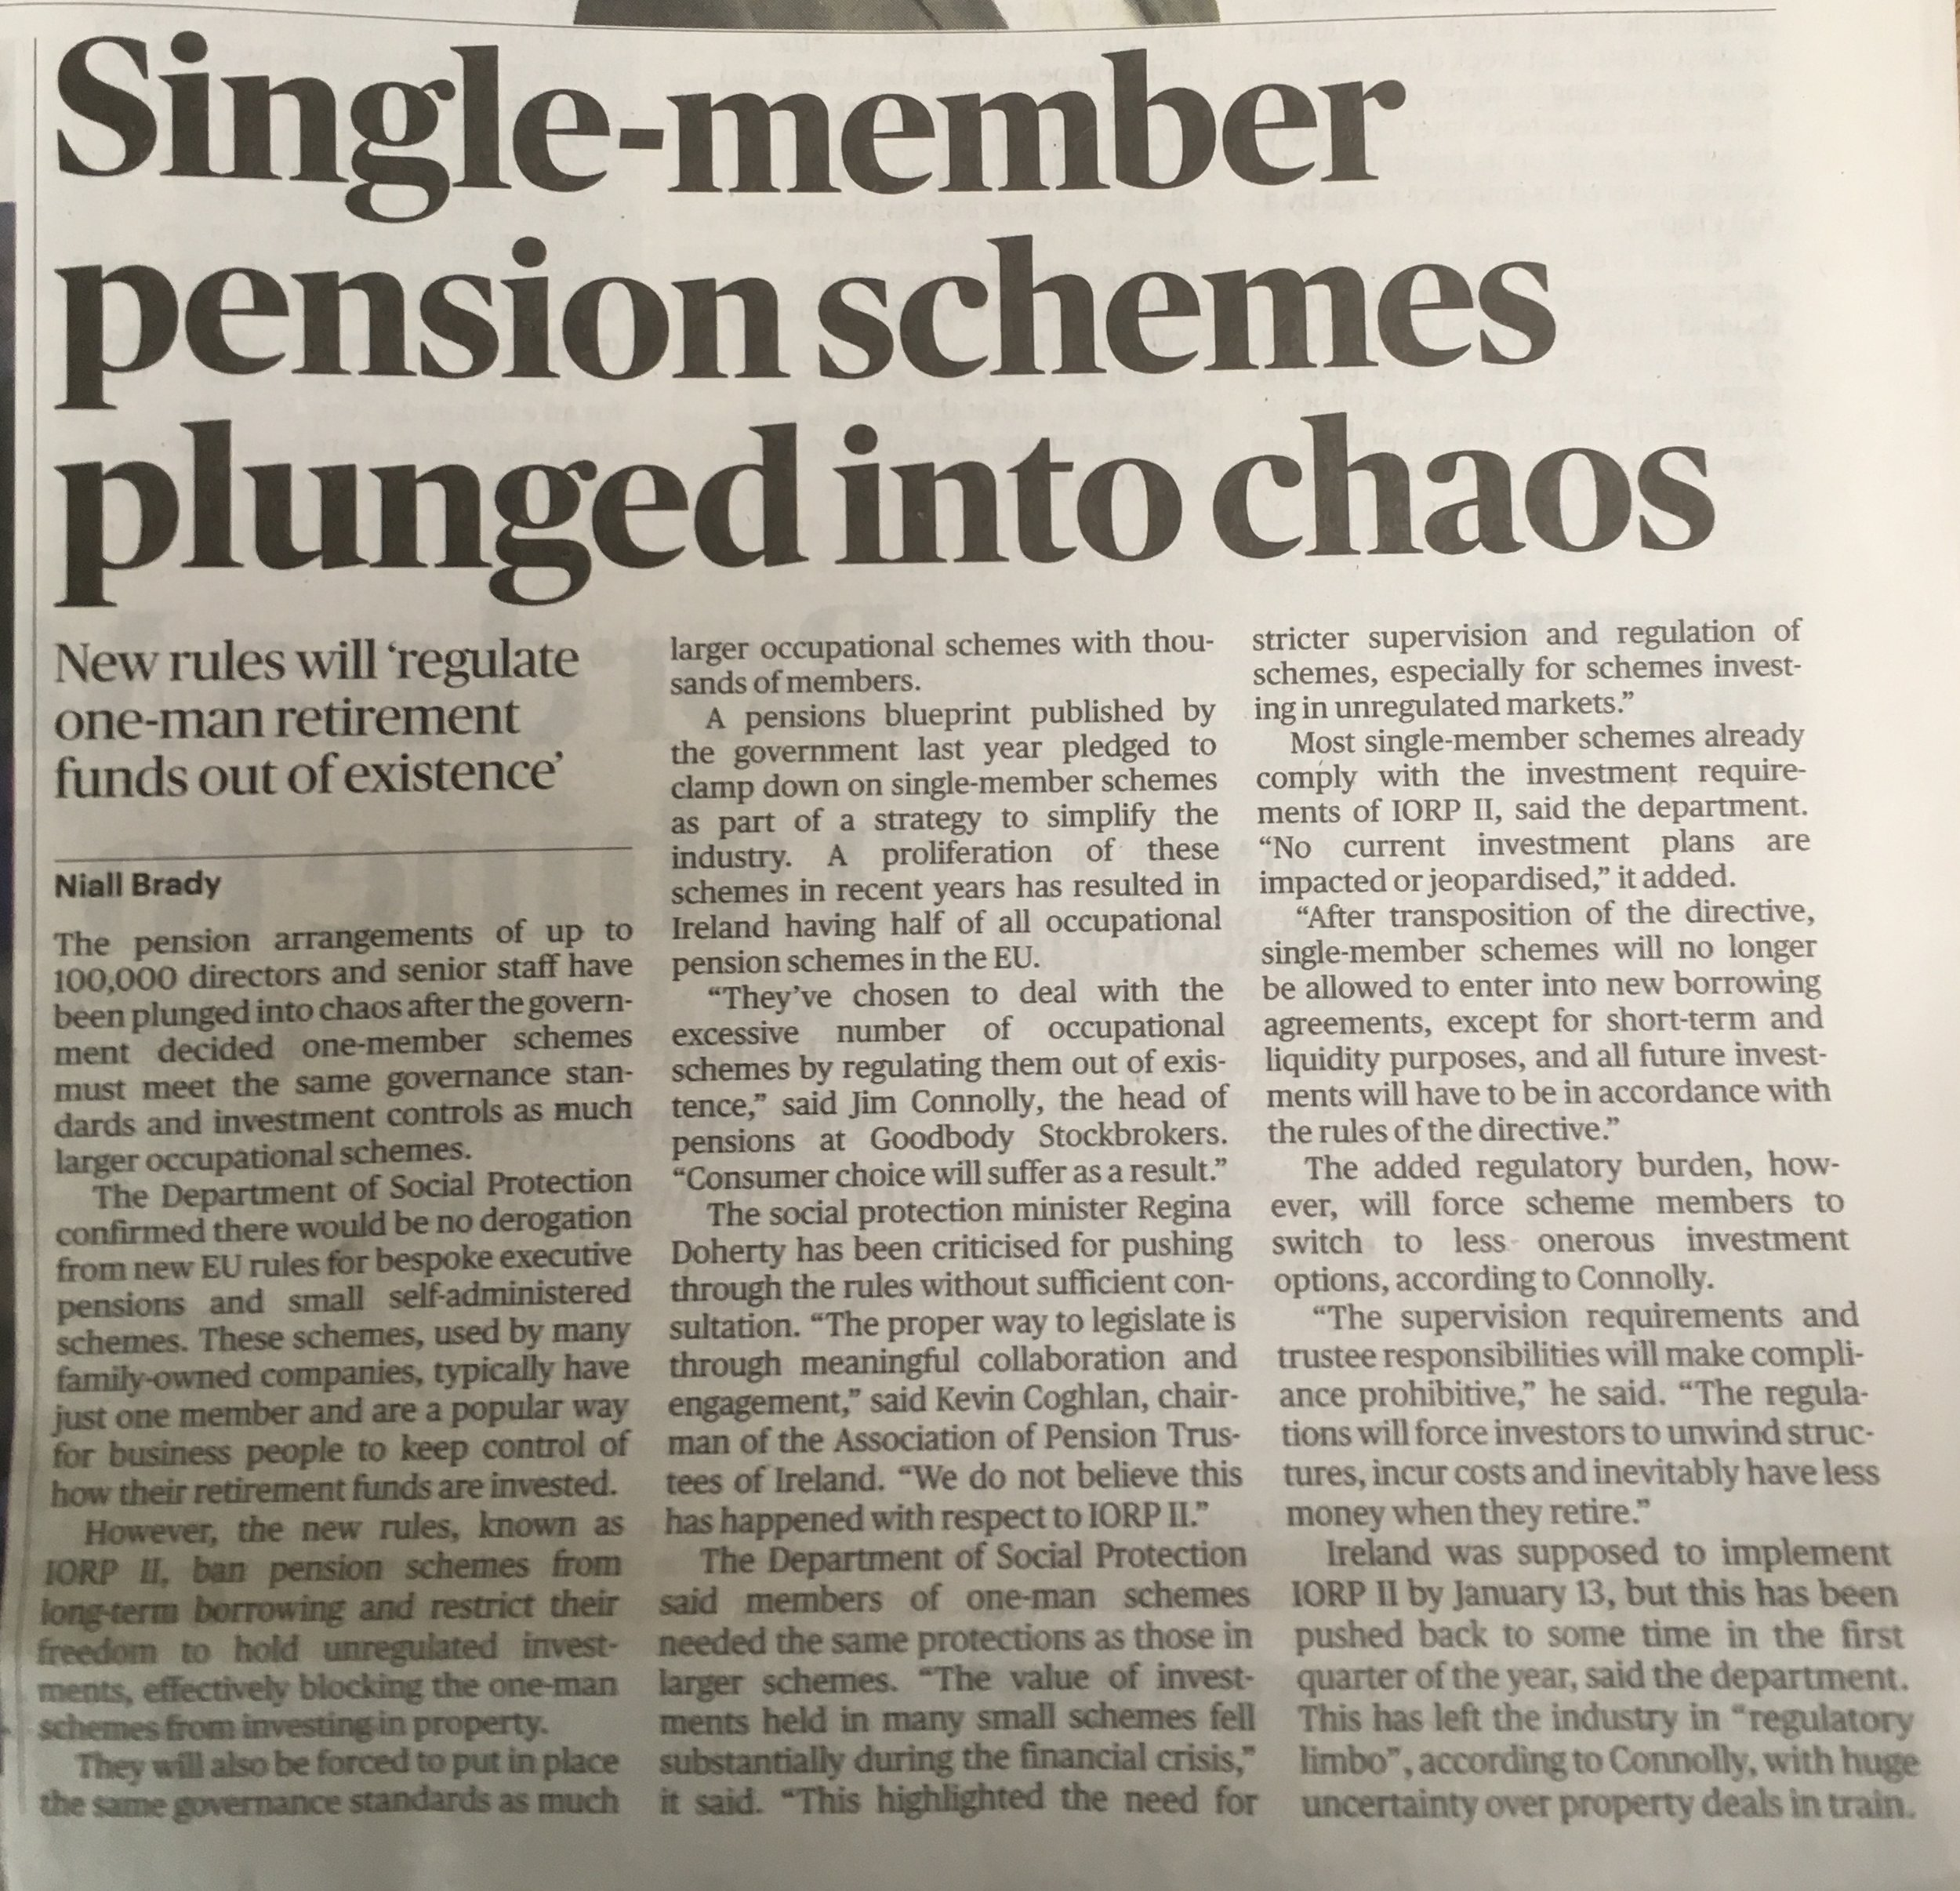 Article by Niall Brady in the Sunday Times 20 January 2019